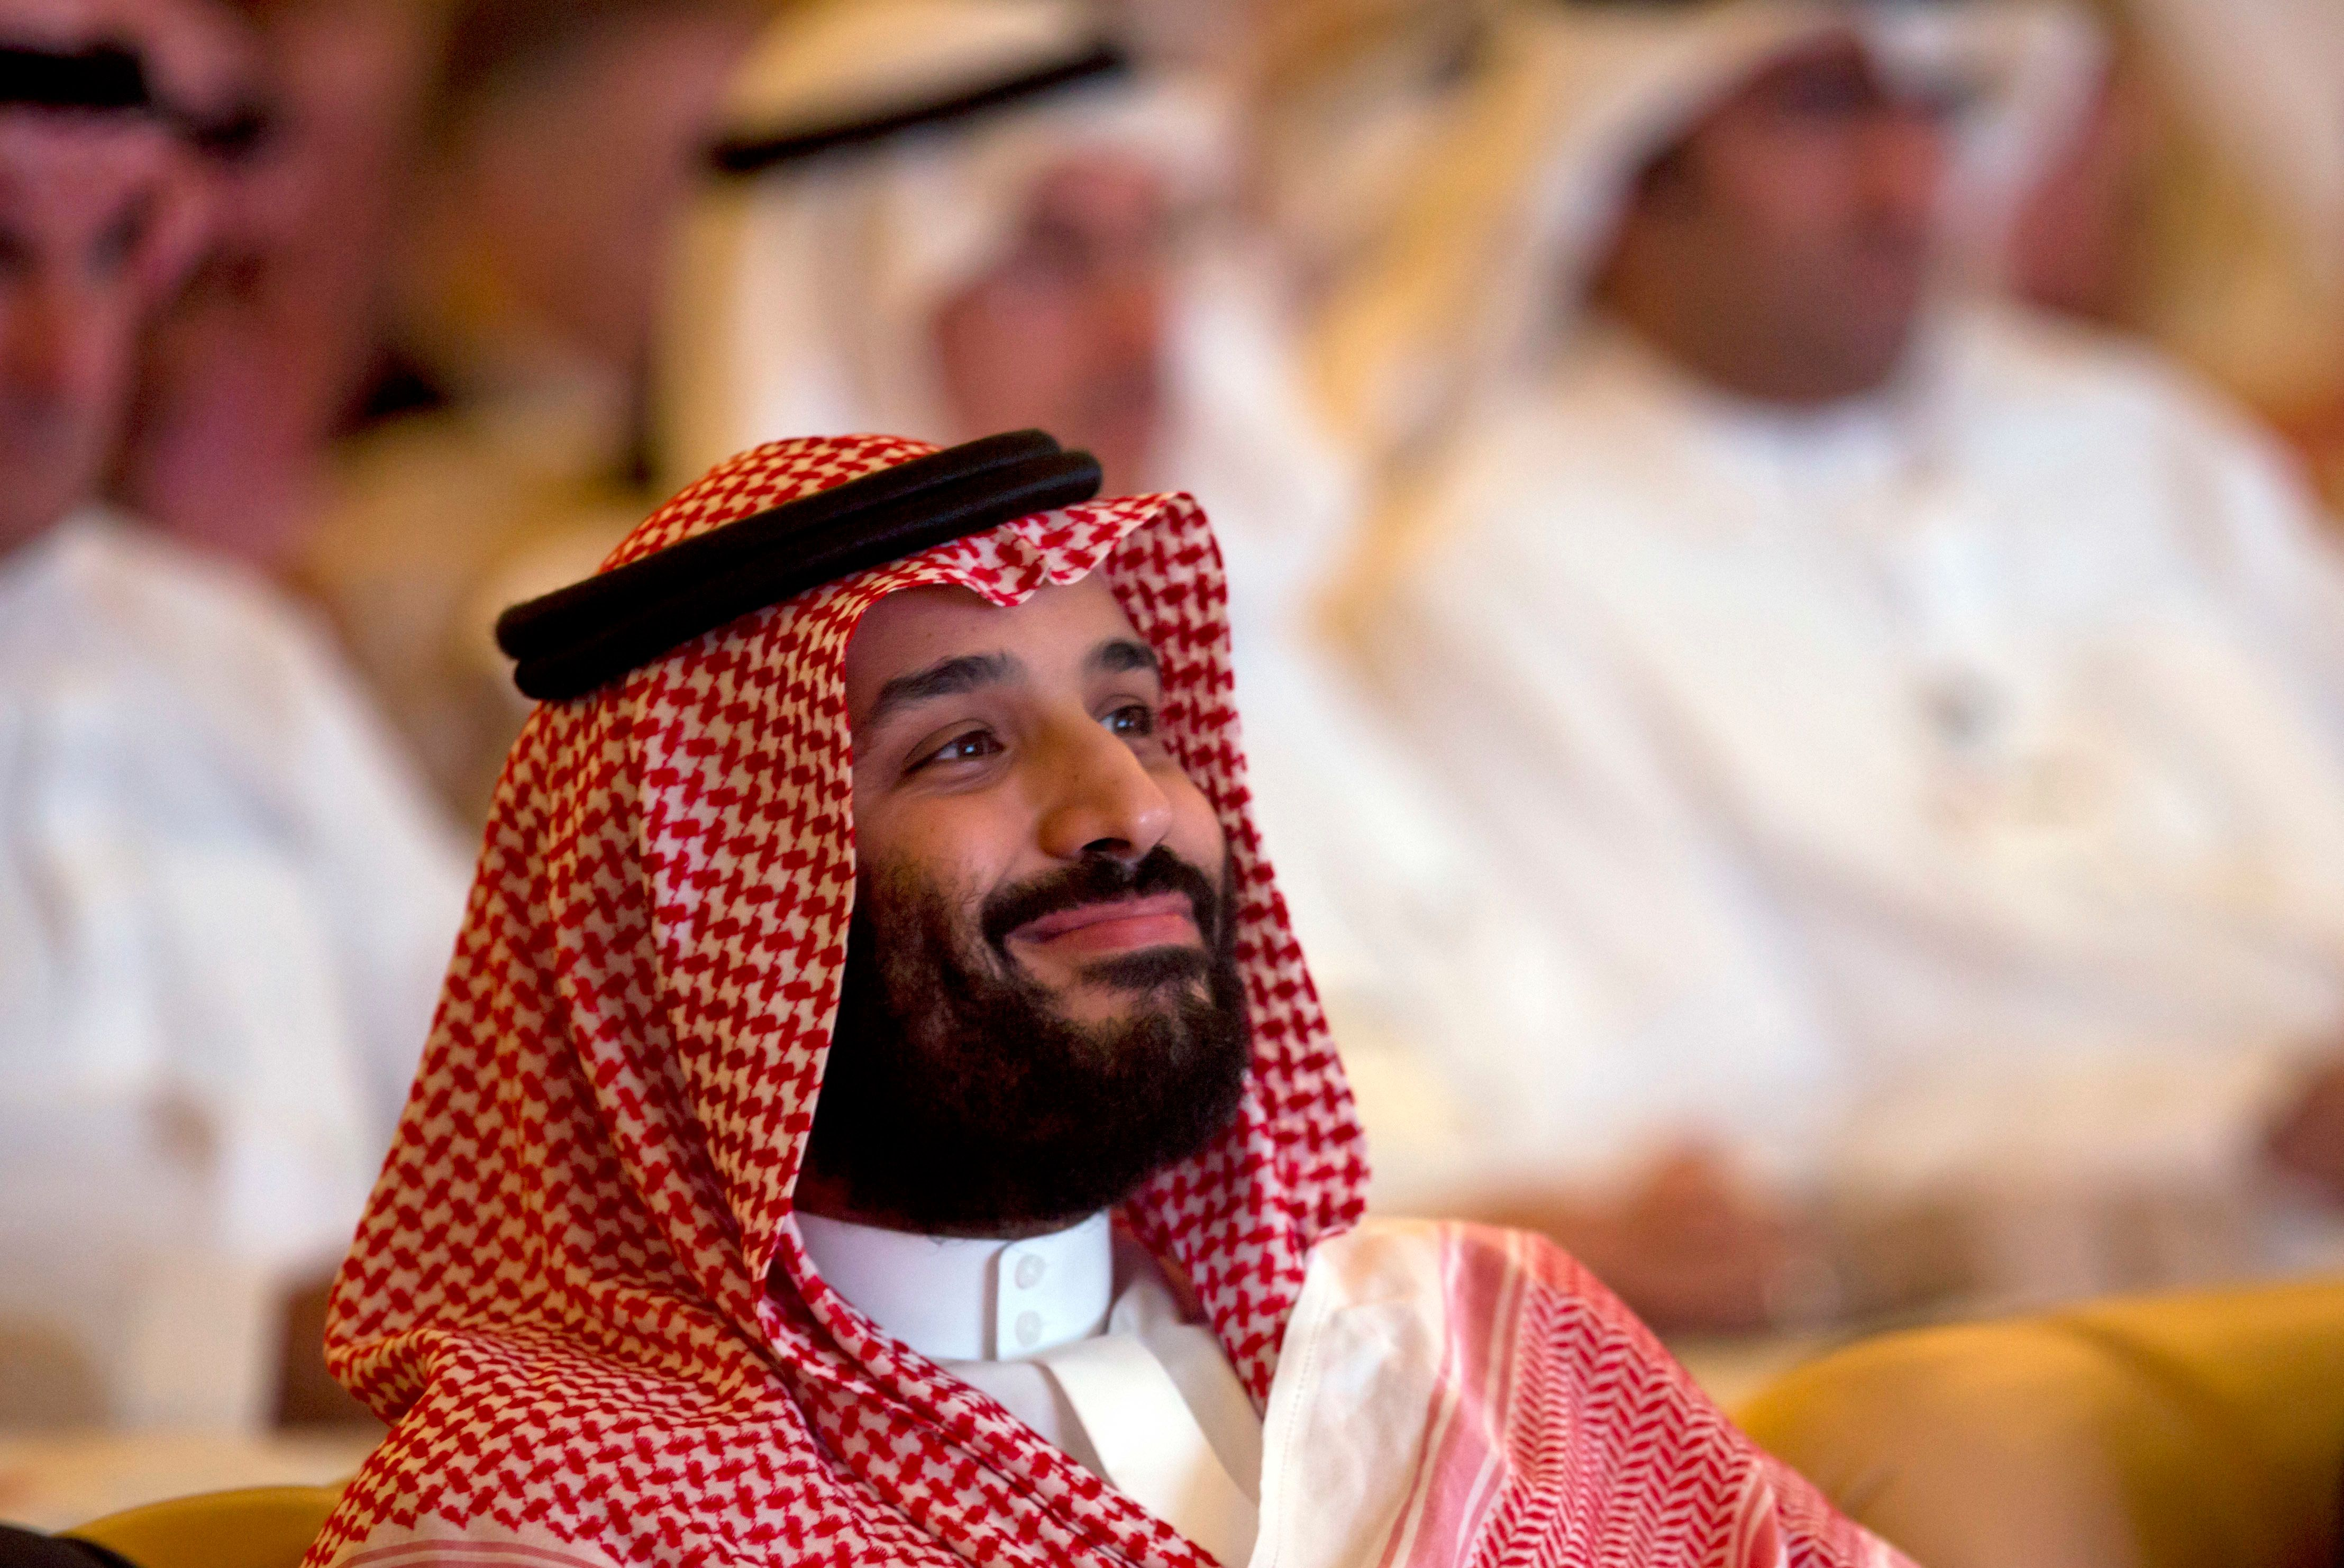 Some members of the Saudi royal family are agitating to prevent Crown Prince Mohammed bin Salman from becoming king.